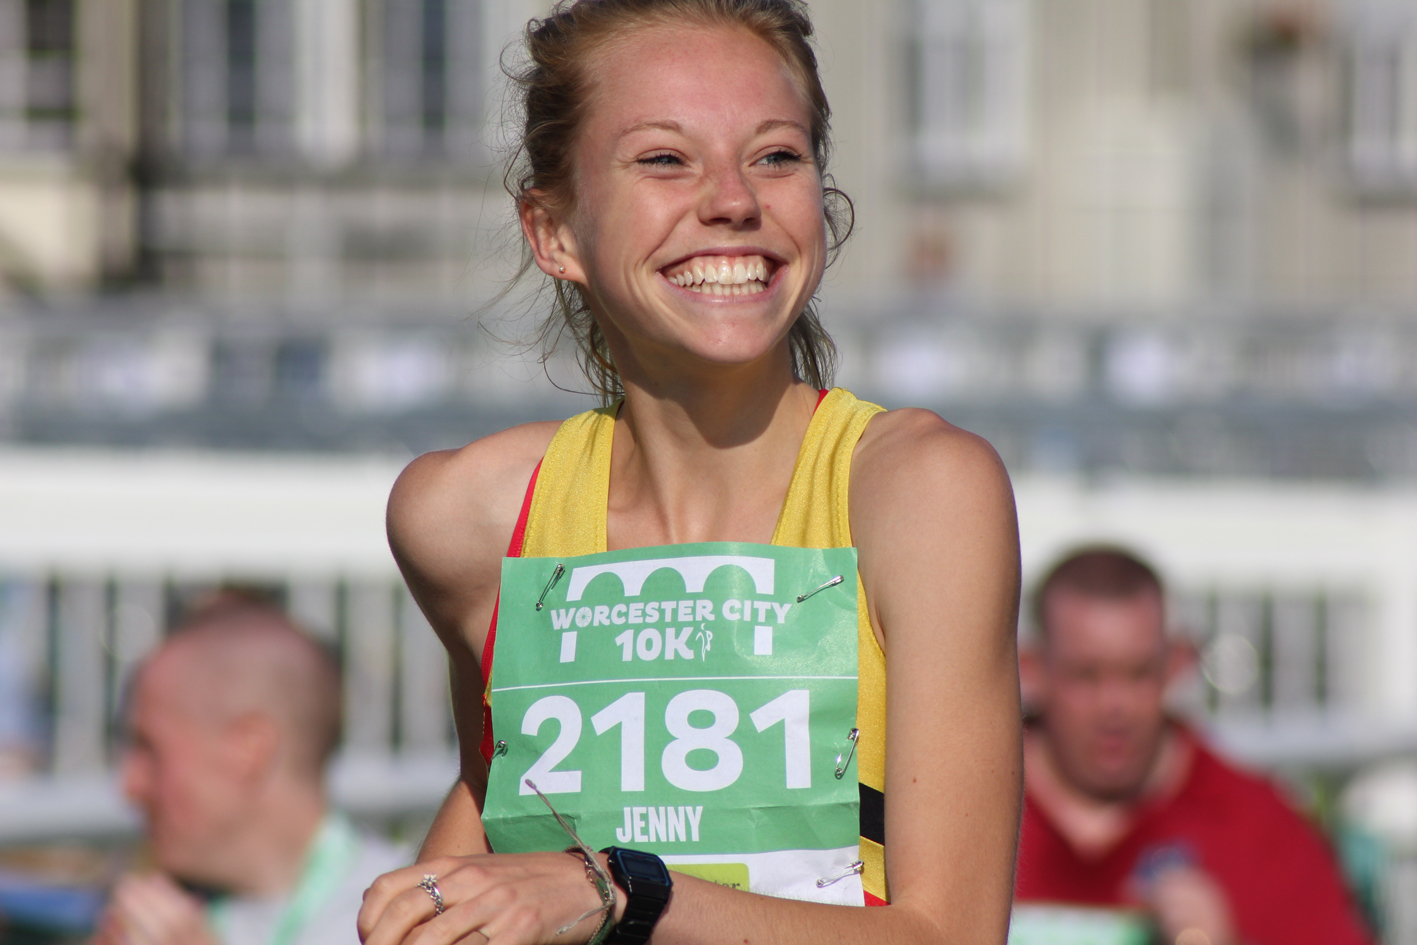 Jenny Nesbitt after winning the inaugural Worcester City 10K in 2014